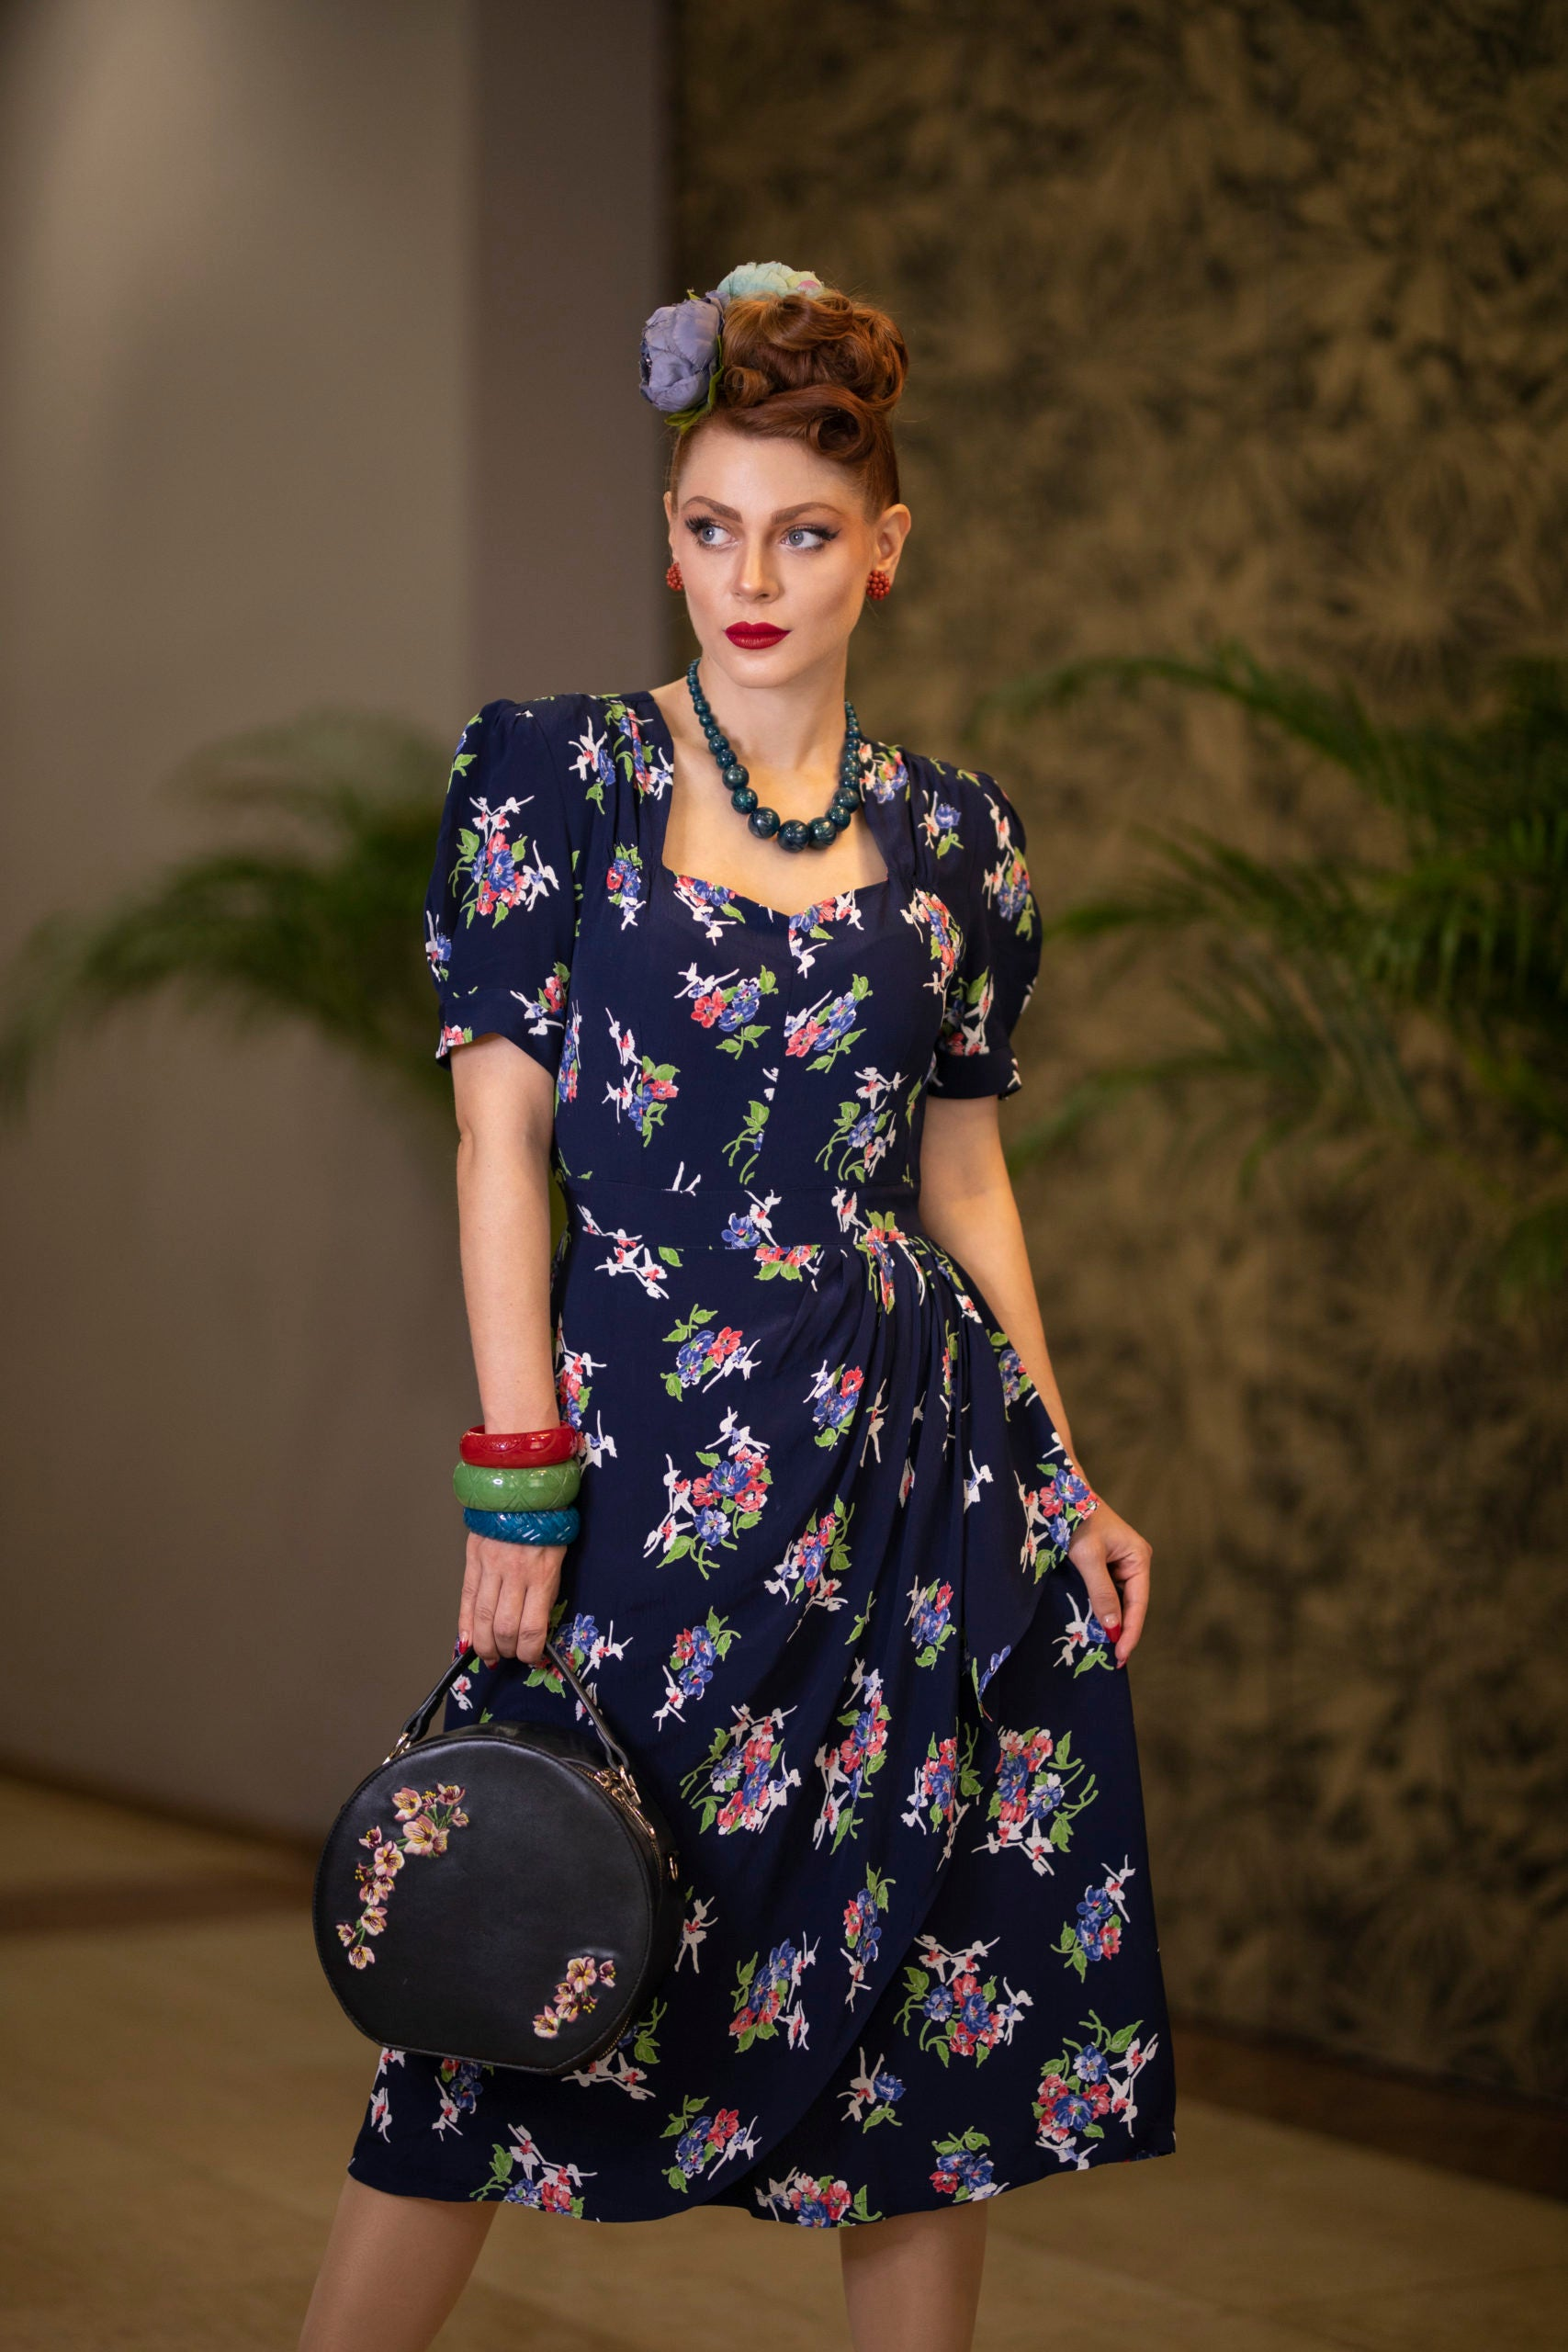 1940s Dress Styles Shelly Dress in Navy Floral Dancer Print A Classic 1940s Inspired wiggle dress True Vintage Style £79.00 AT vintagedancer.com